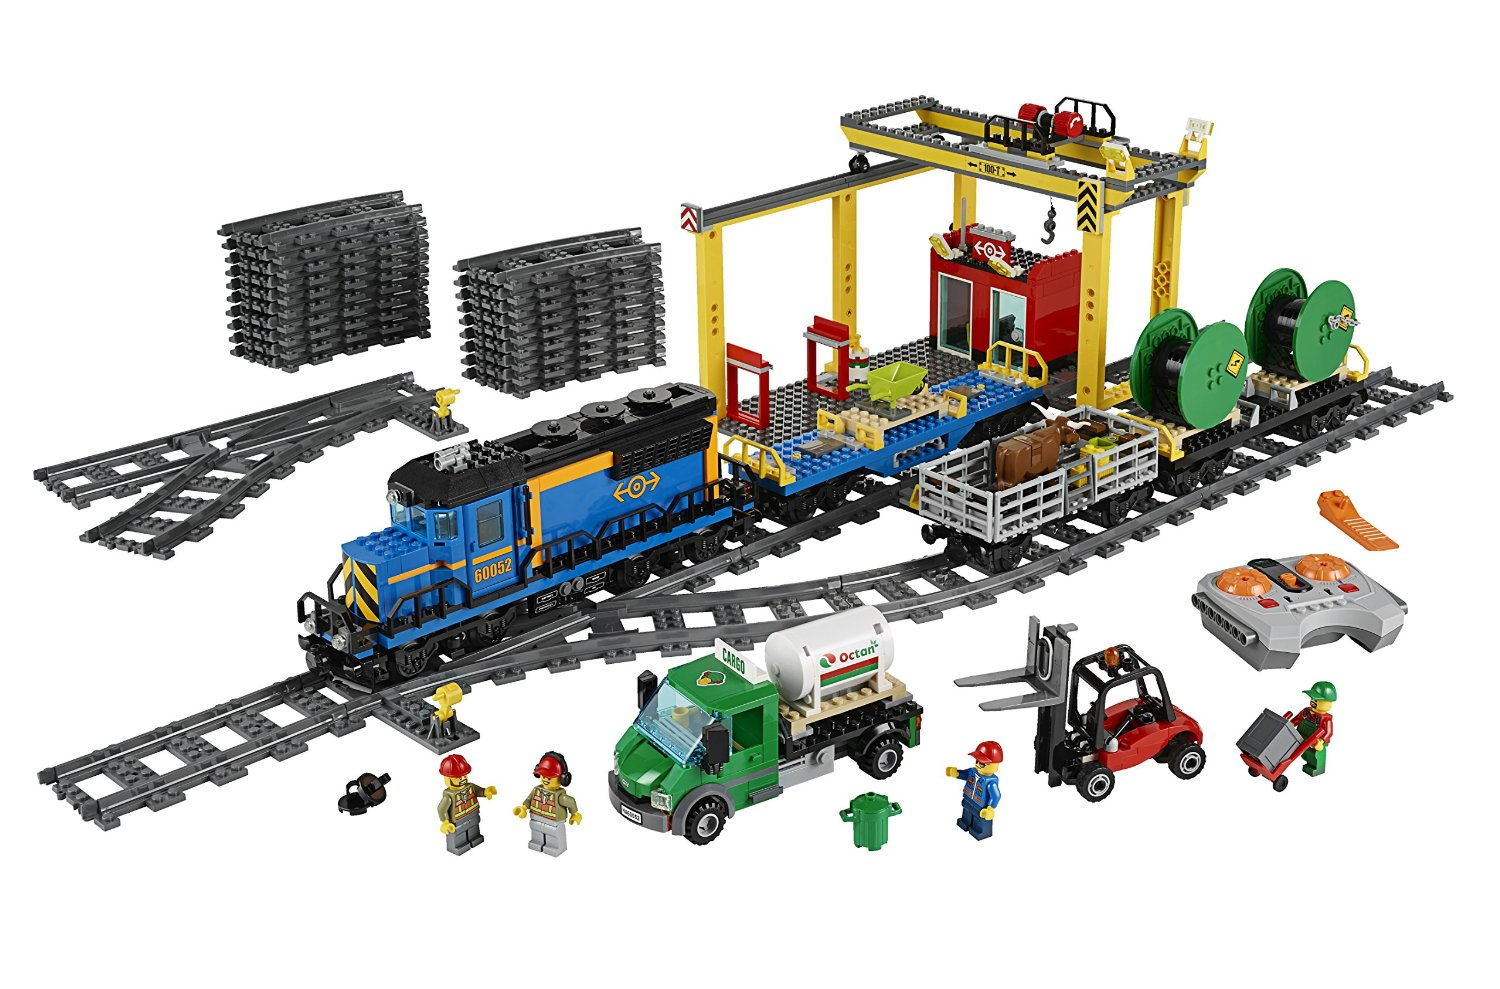 Lego Train Set Review Don T Waste Your Money On The Wrong Set Join The Building Craze